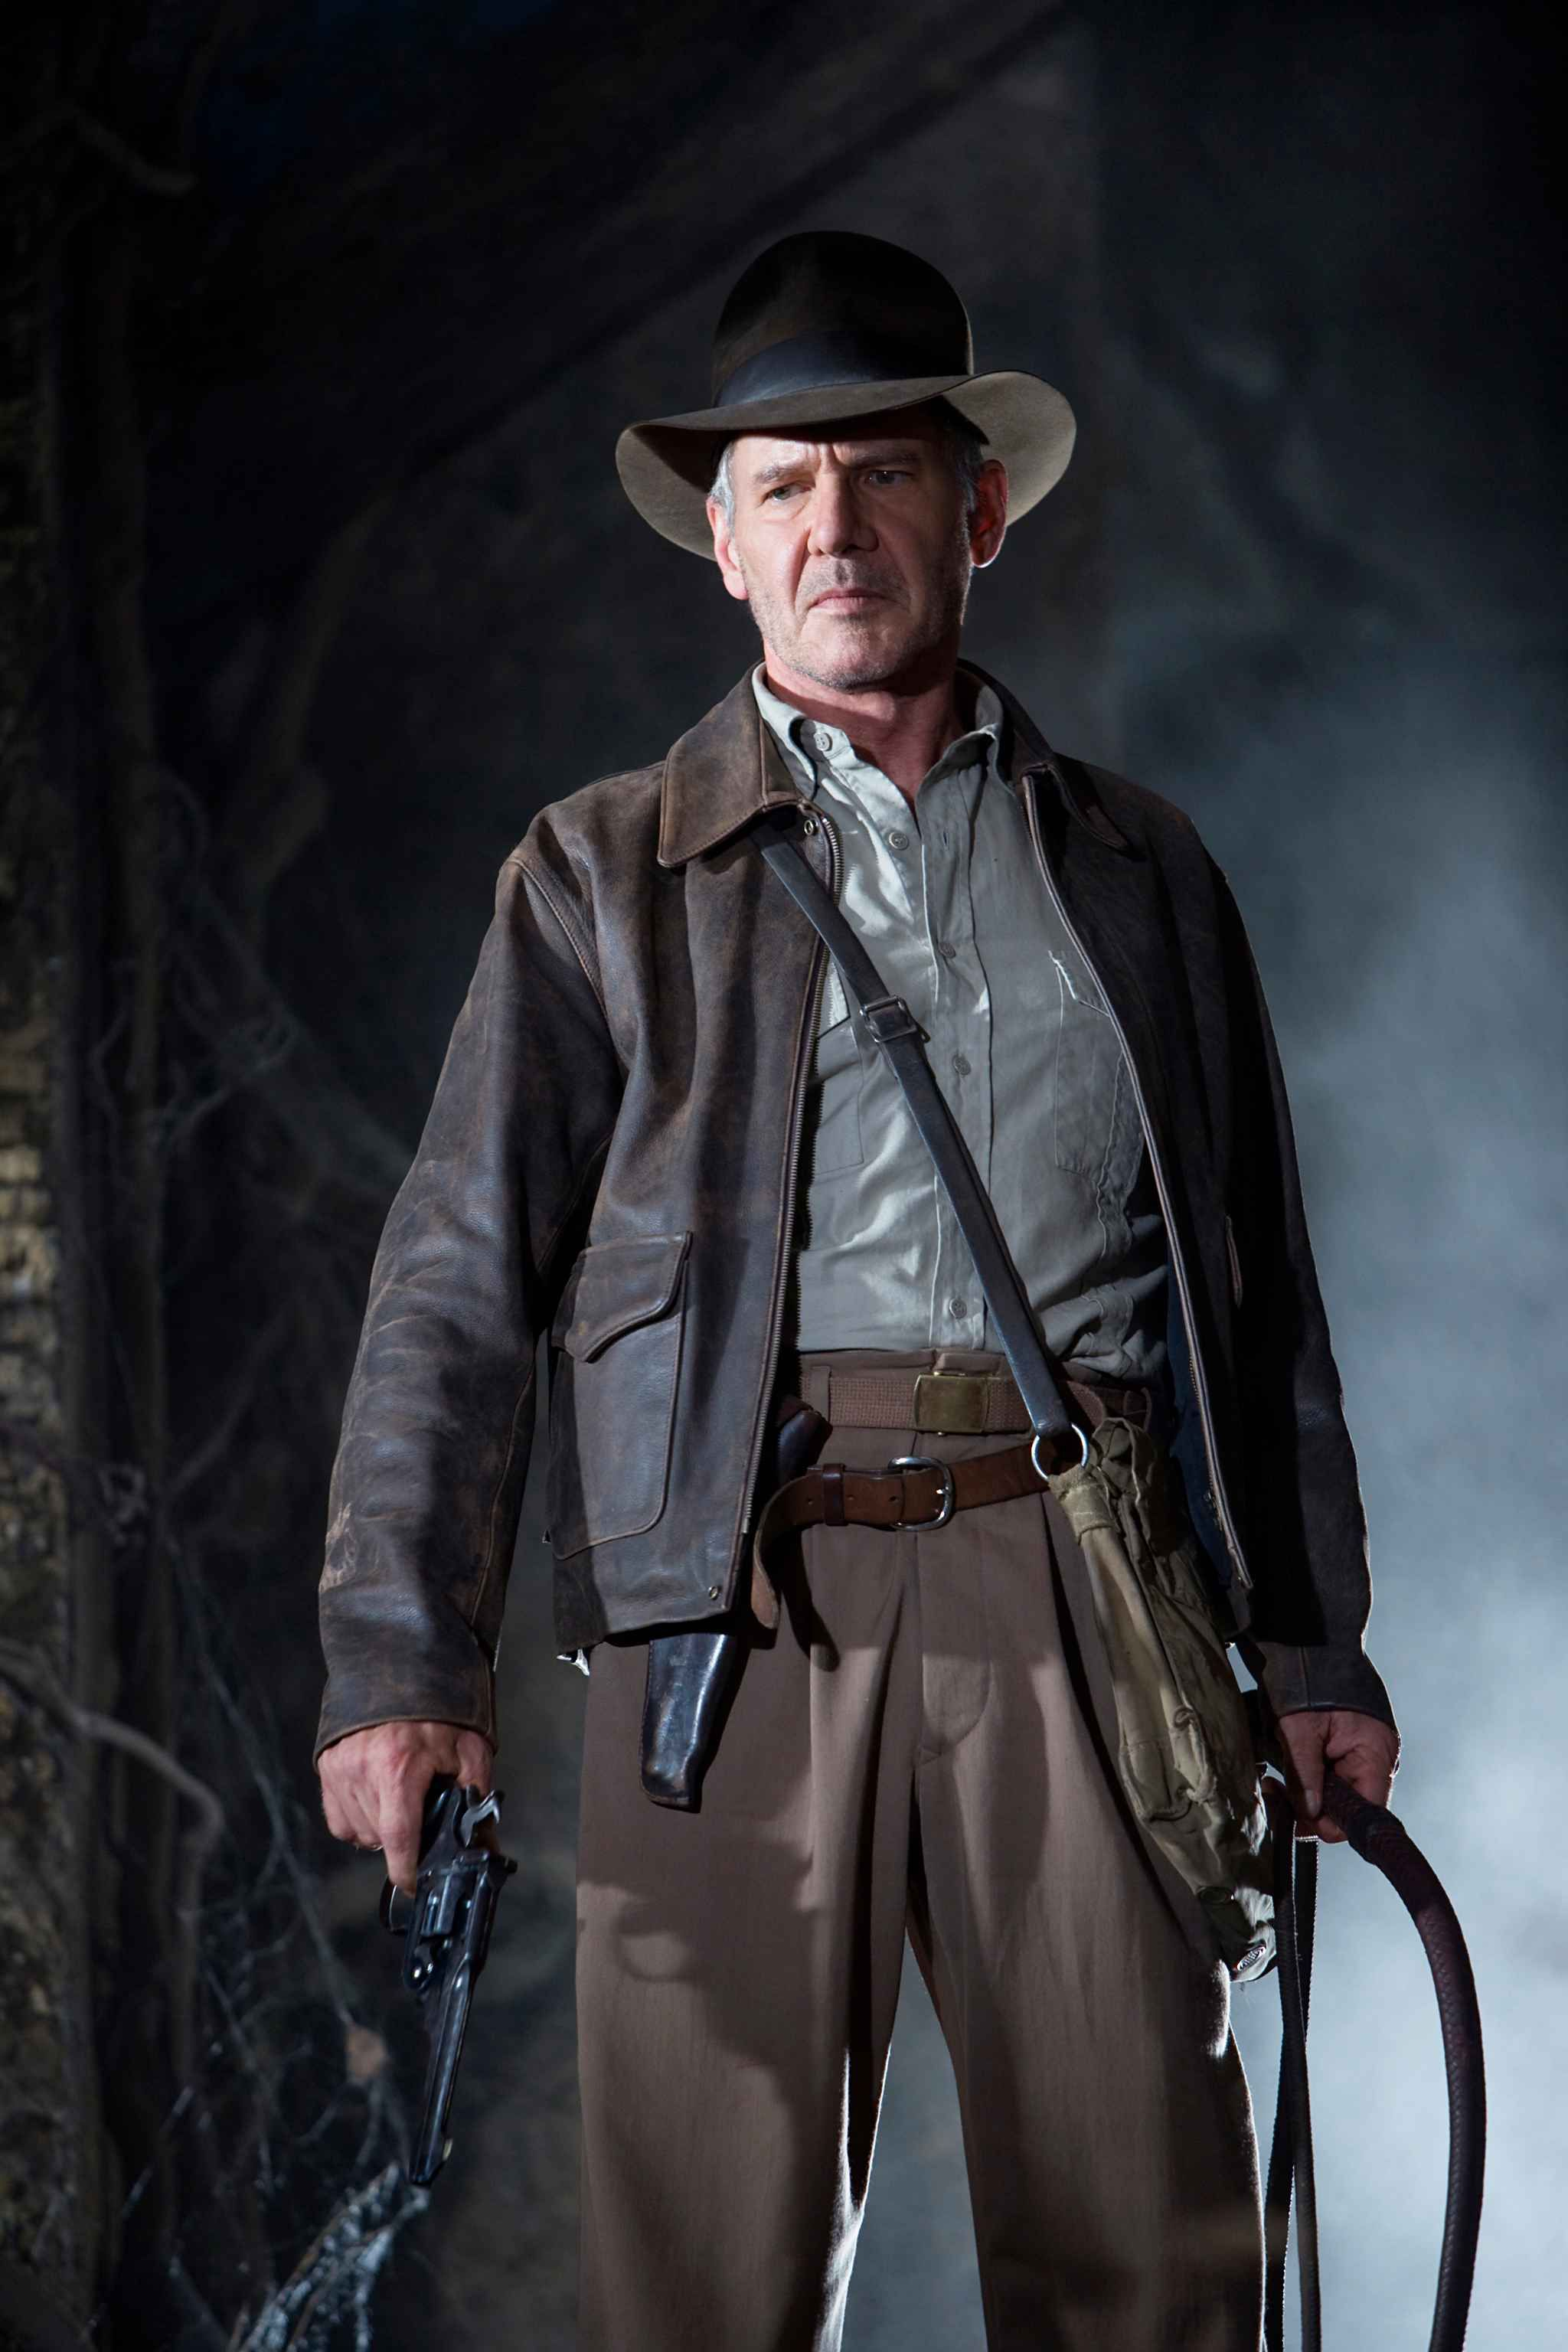 indiana jones - Google Search  sc 1 st  Pinterest & Indiana Jones and the Kingdom of the Crystal Skull (2008) | Indiana ...